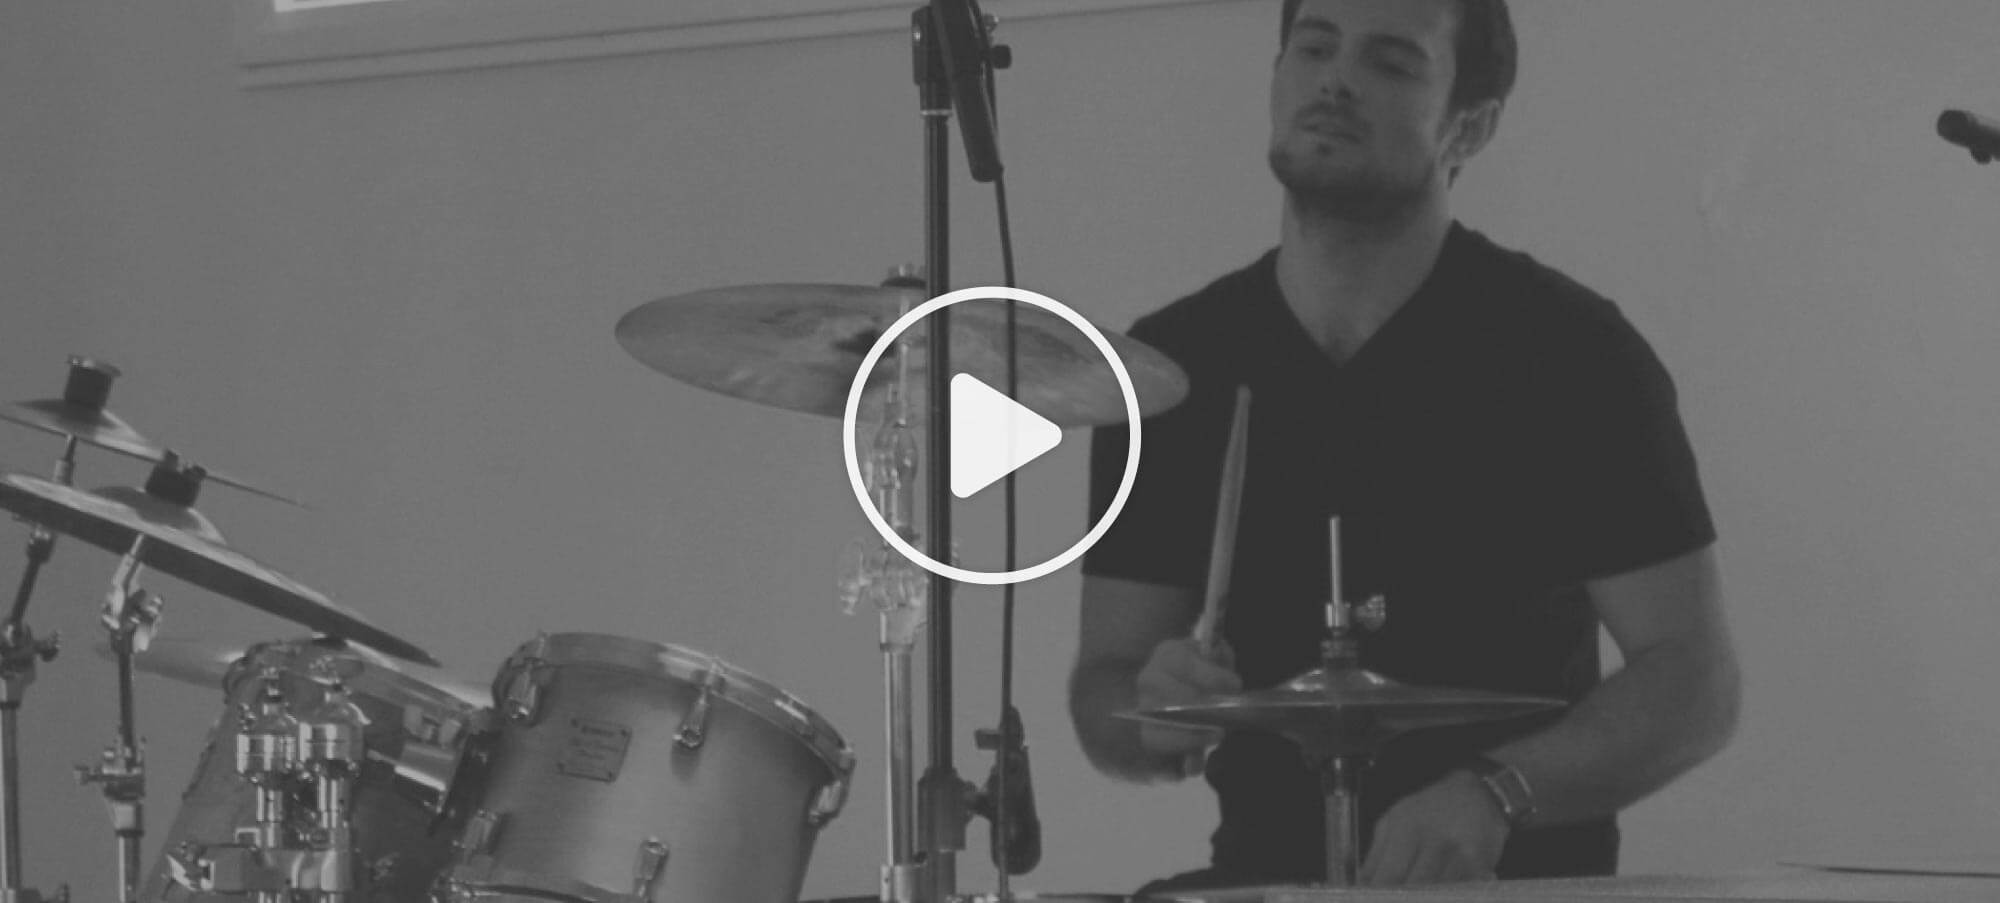 northern beaches drum lessons youtube channel